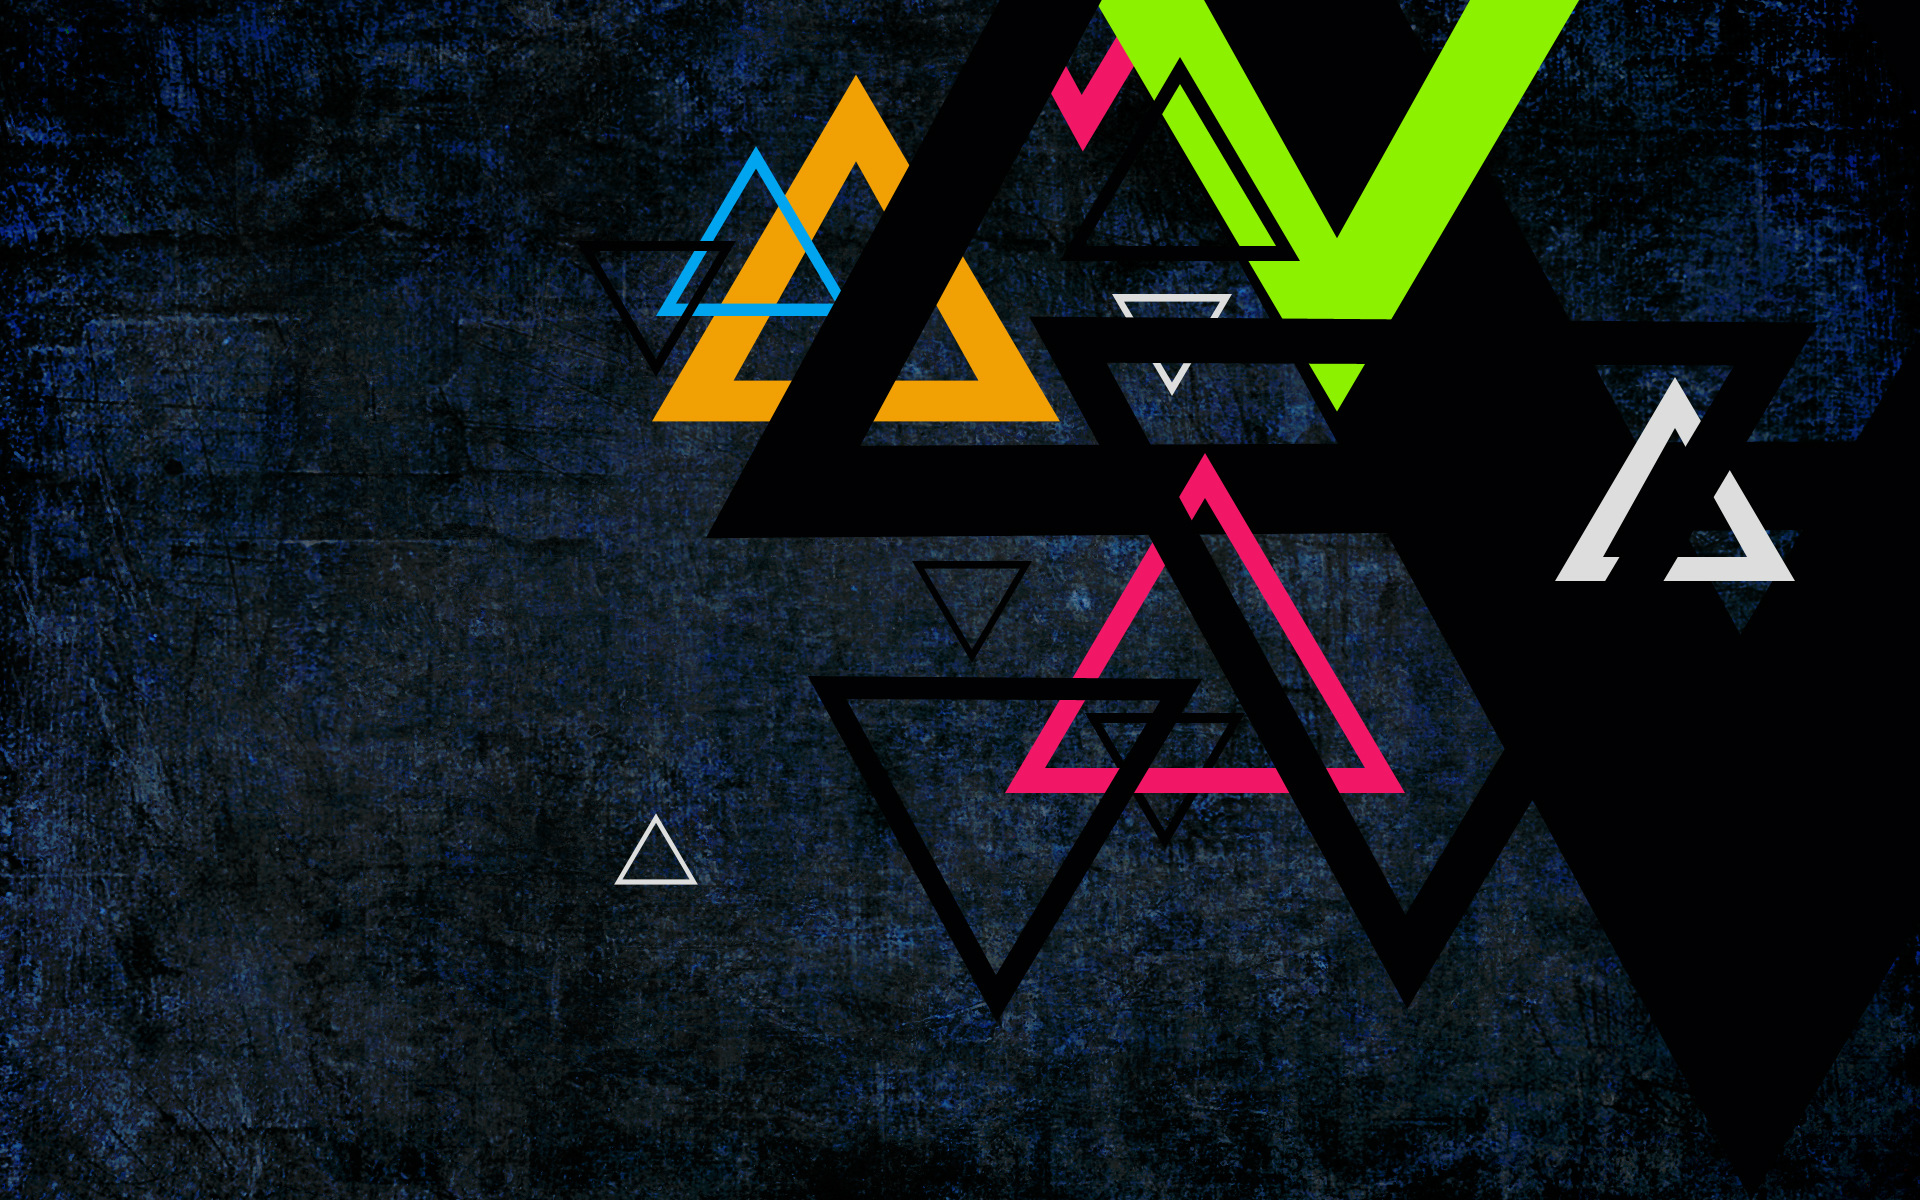 Geometrical Wallpapers with Triangles  242.51 Kb